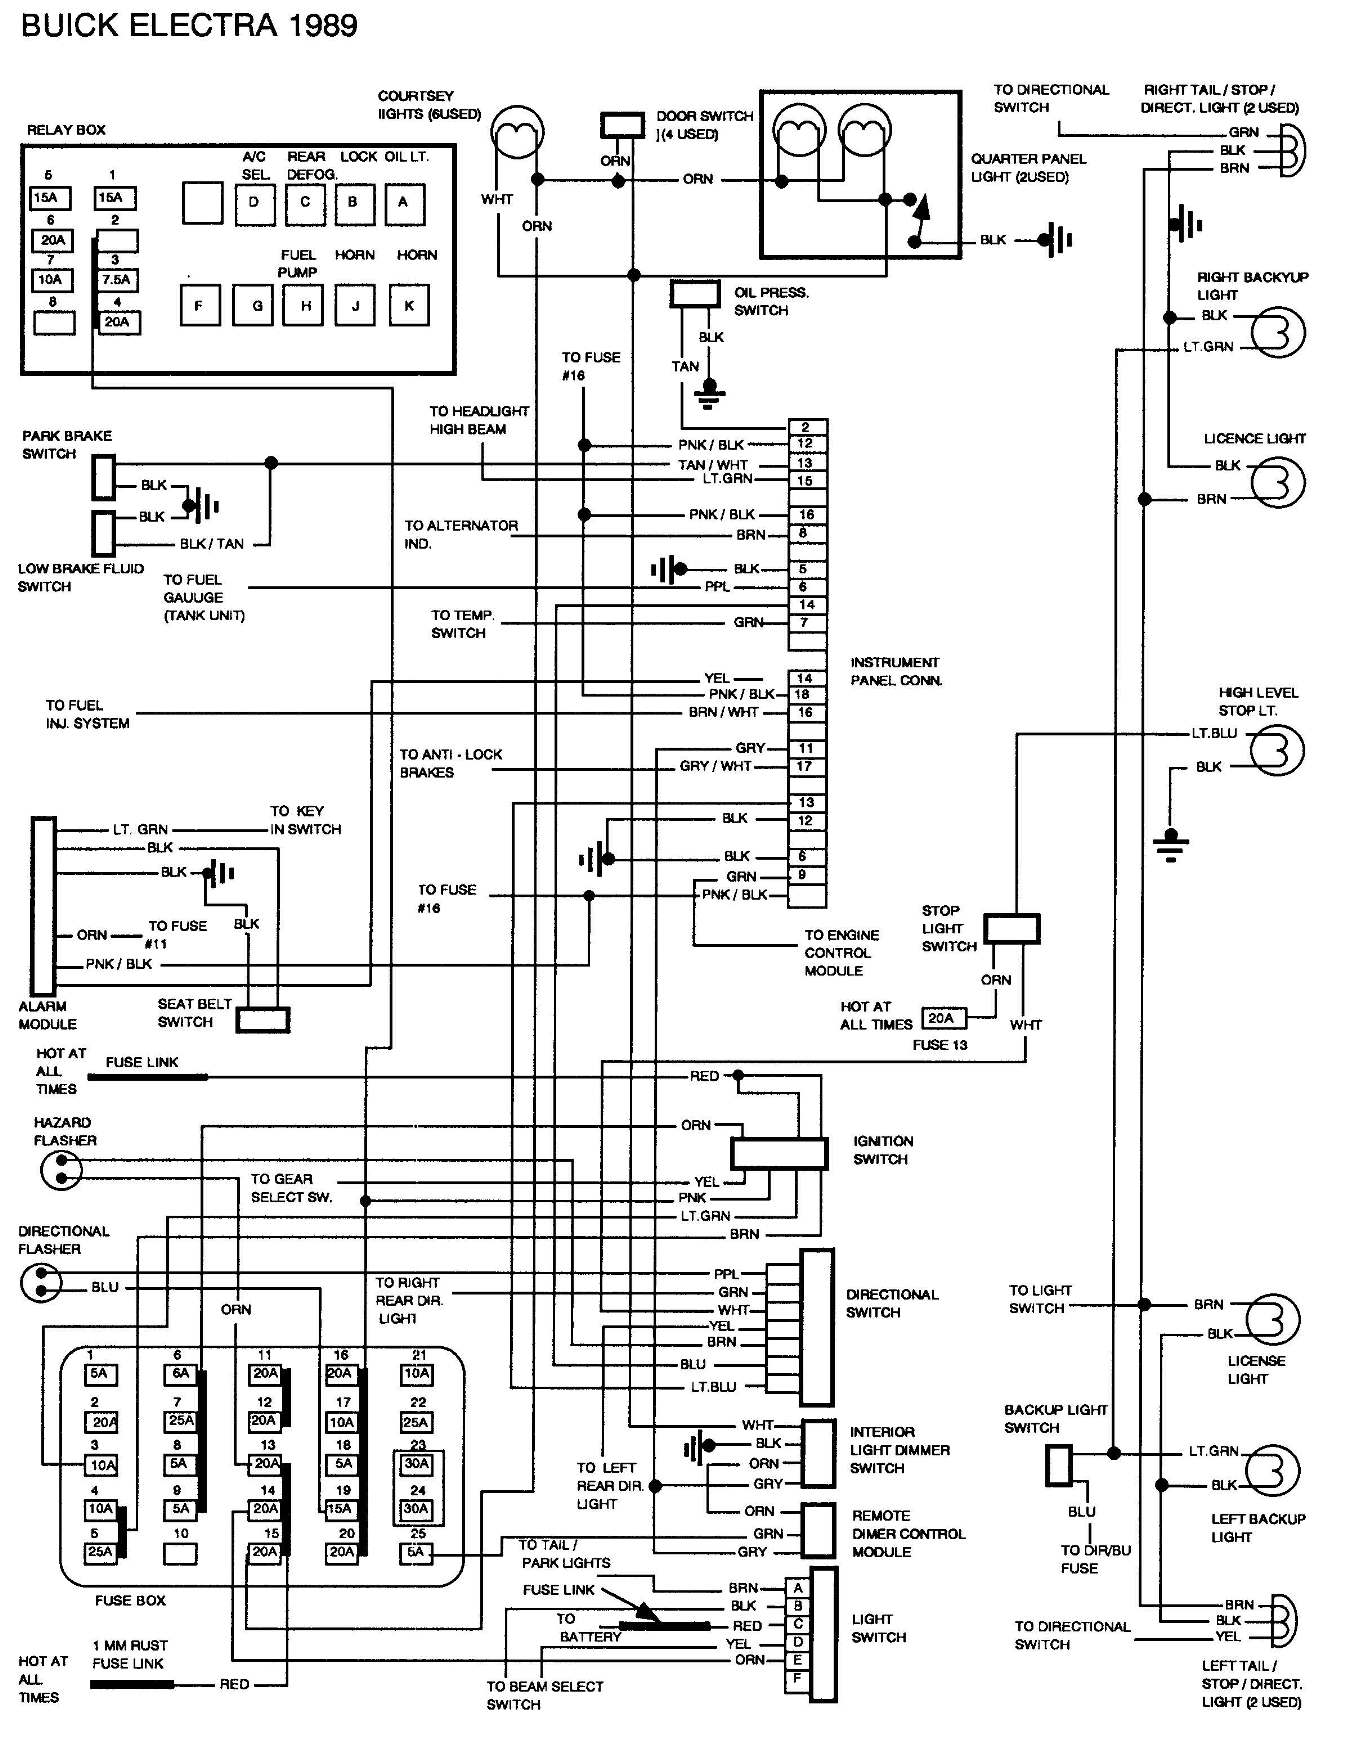 2004 Buick Rendezvous Wiring Diagram For Wheel on